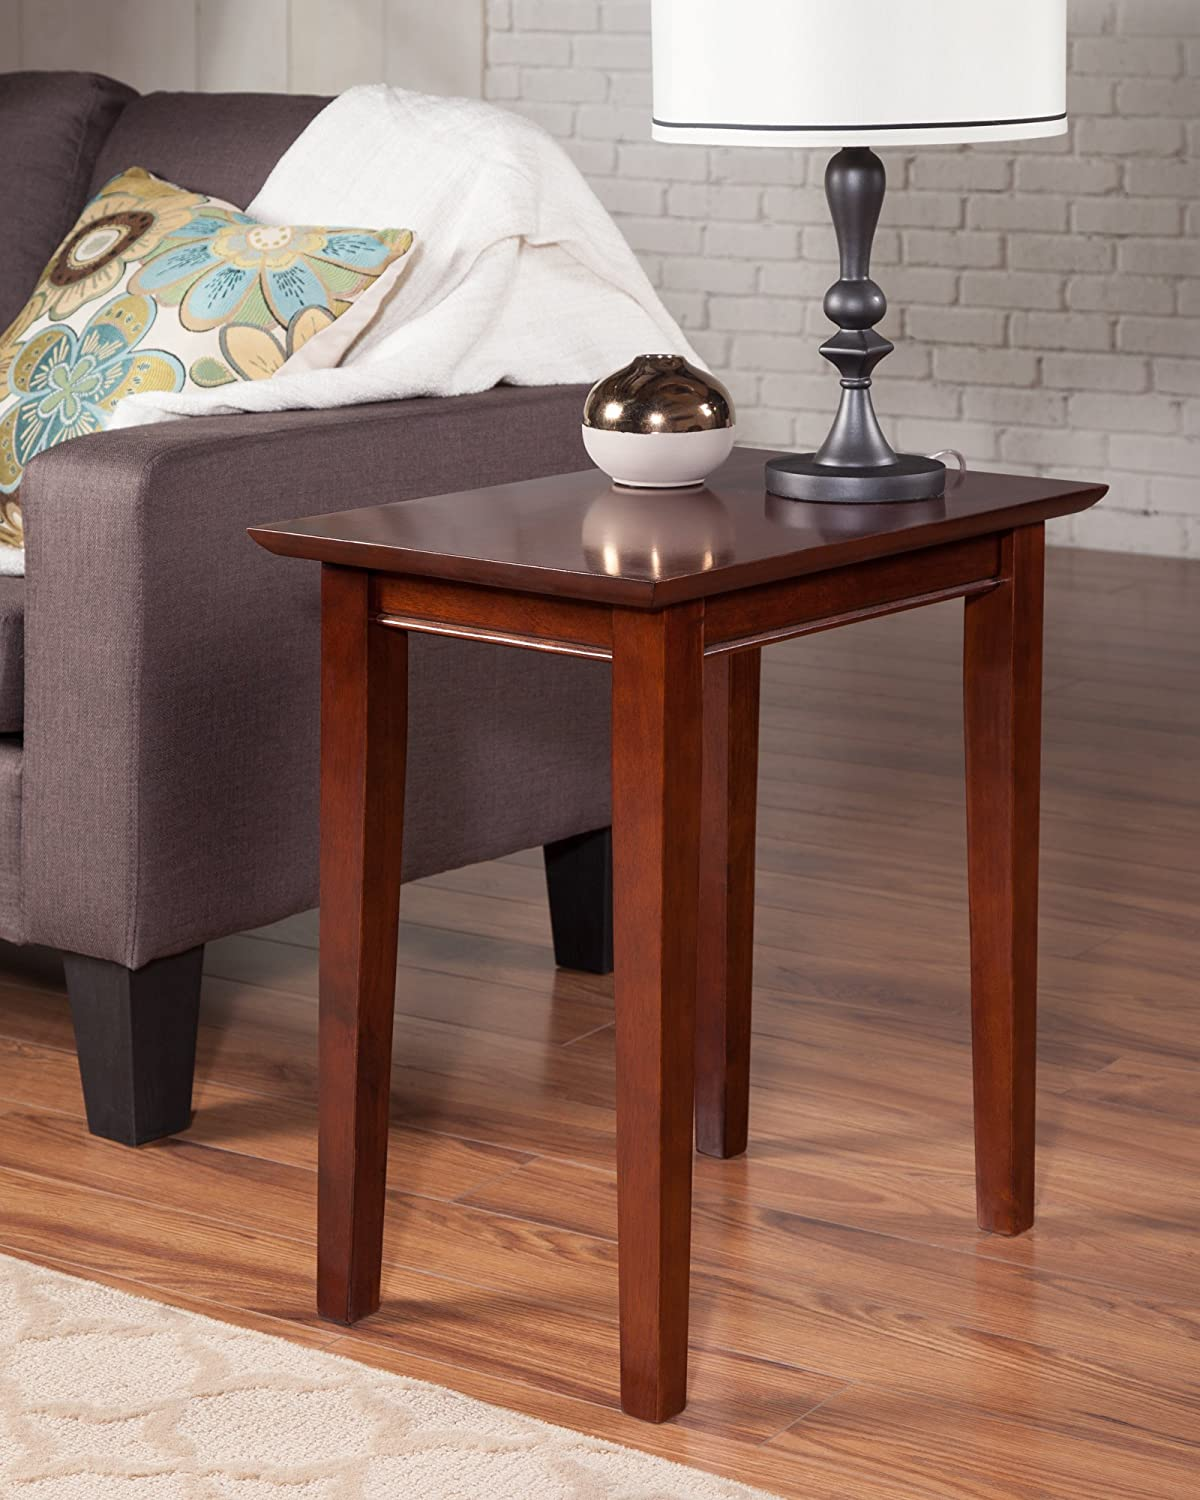 Atlantic Furniture AH13104 Shaker Side Table Rubber Wood Walnut